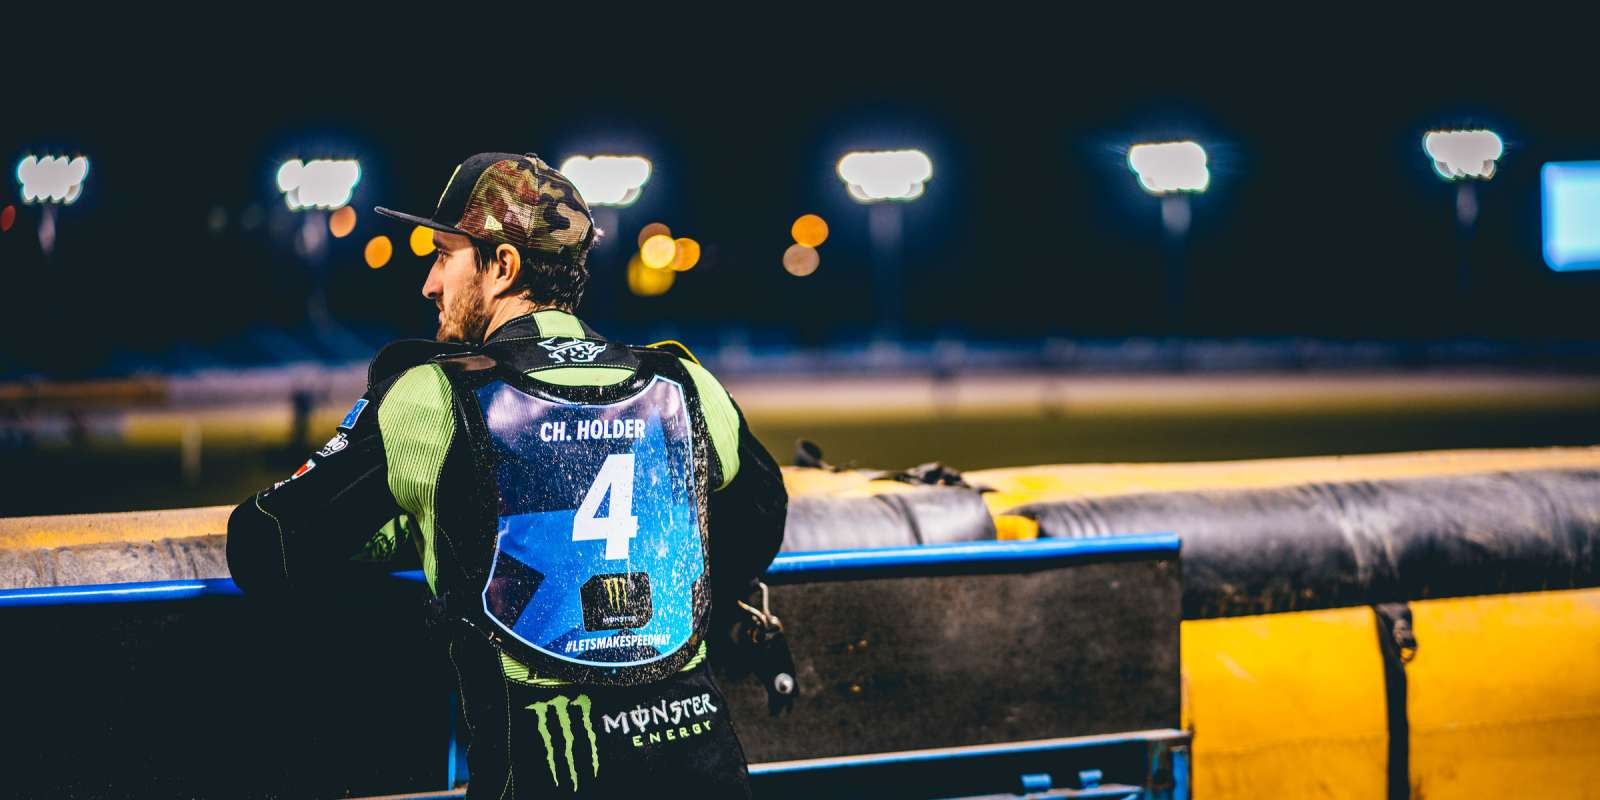 Images from Round 2 of the 2018 Speedway Best Pairs Series